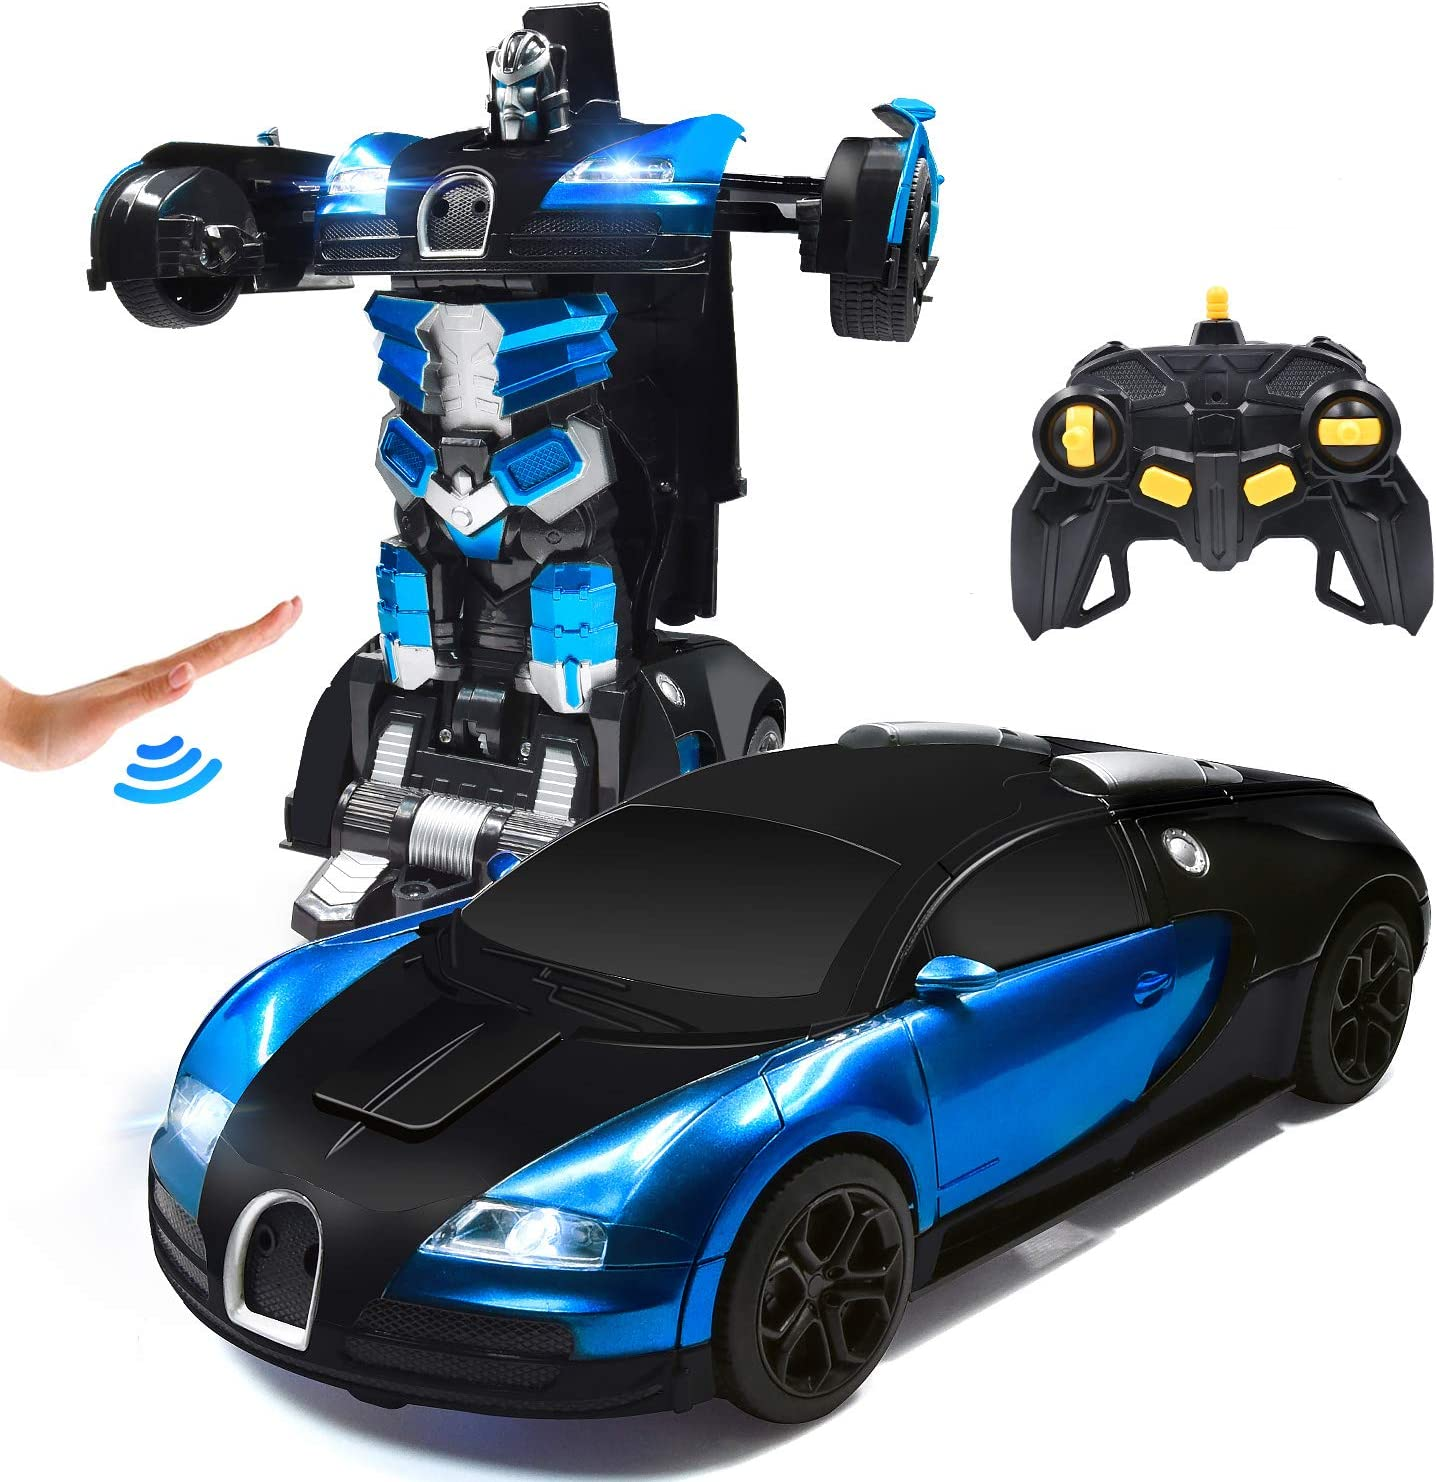 Deformation Remote Control Vehicle with Gesture Sensing One Button Transformation 360/°Rotating Drifting 1:14 Scale Best Gift for Boys and Girls Blue Jeestam RC Robot Car for Kids Transform Car Toy